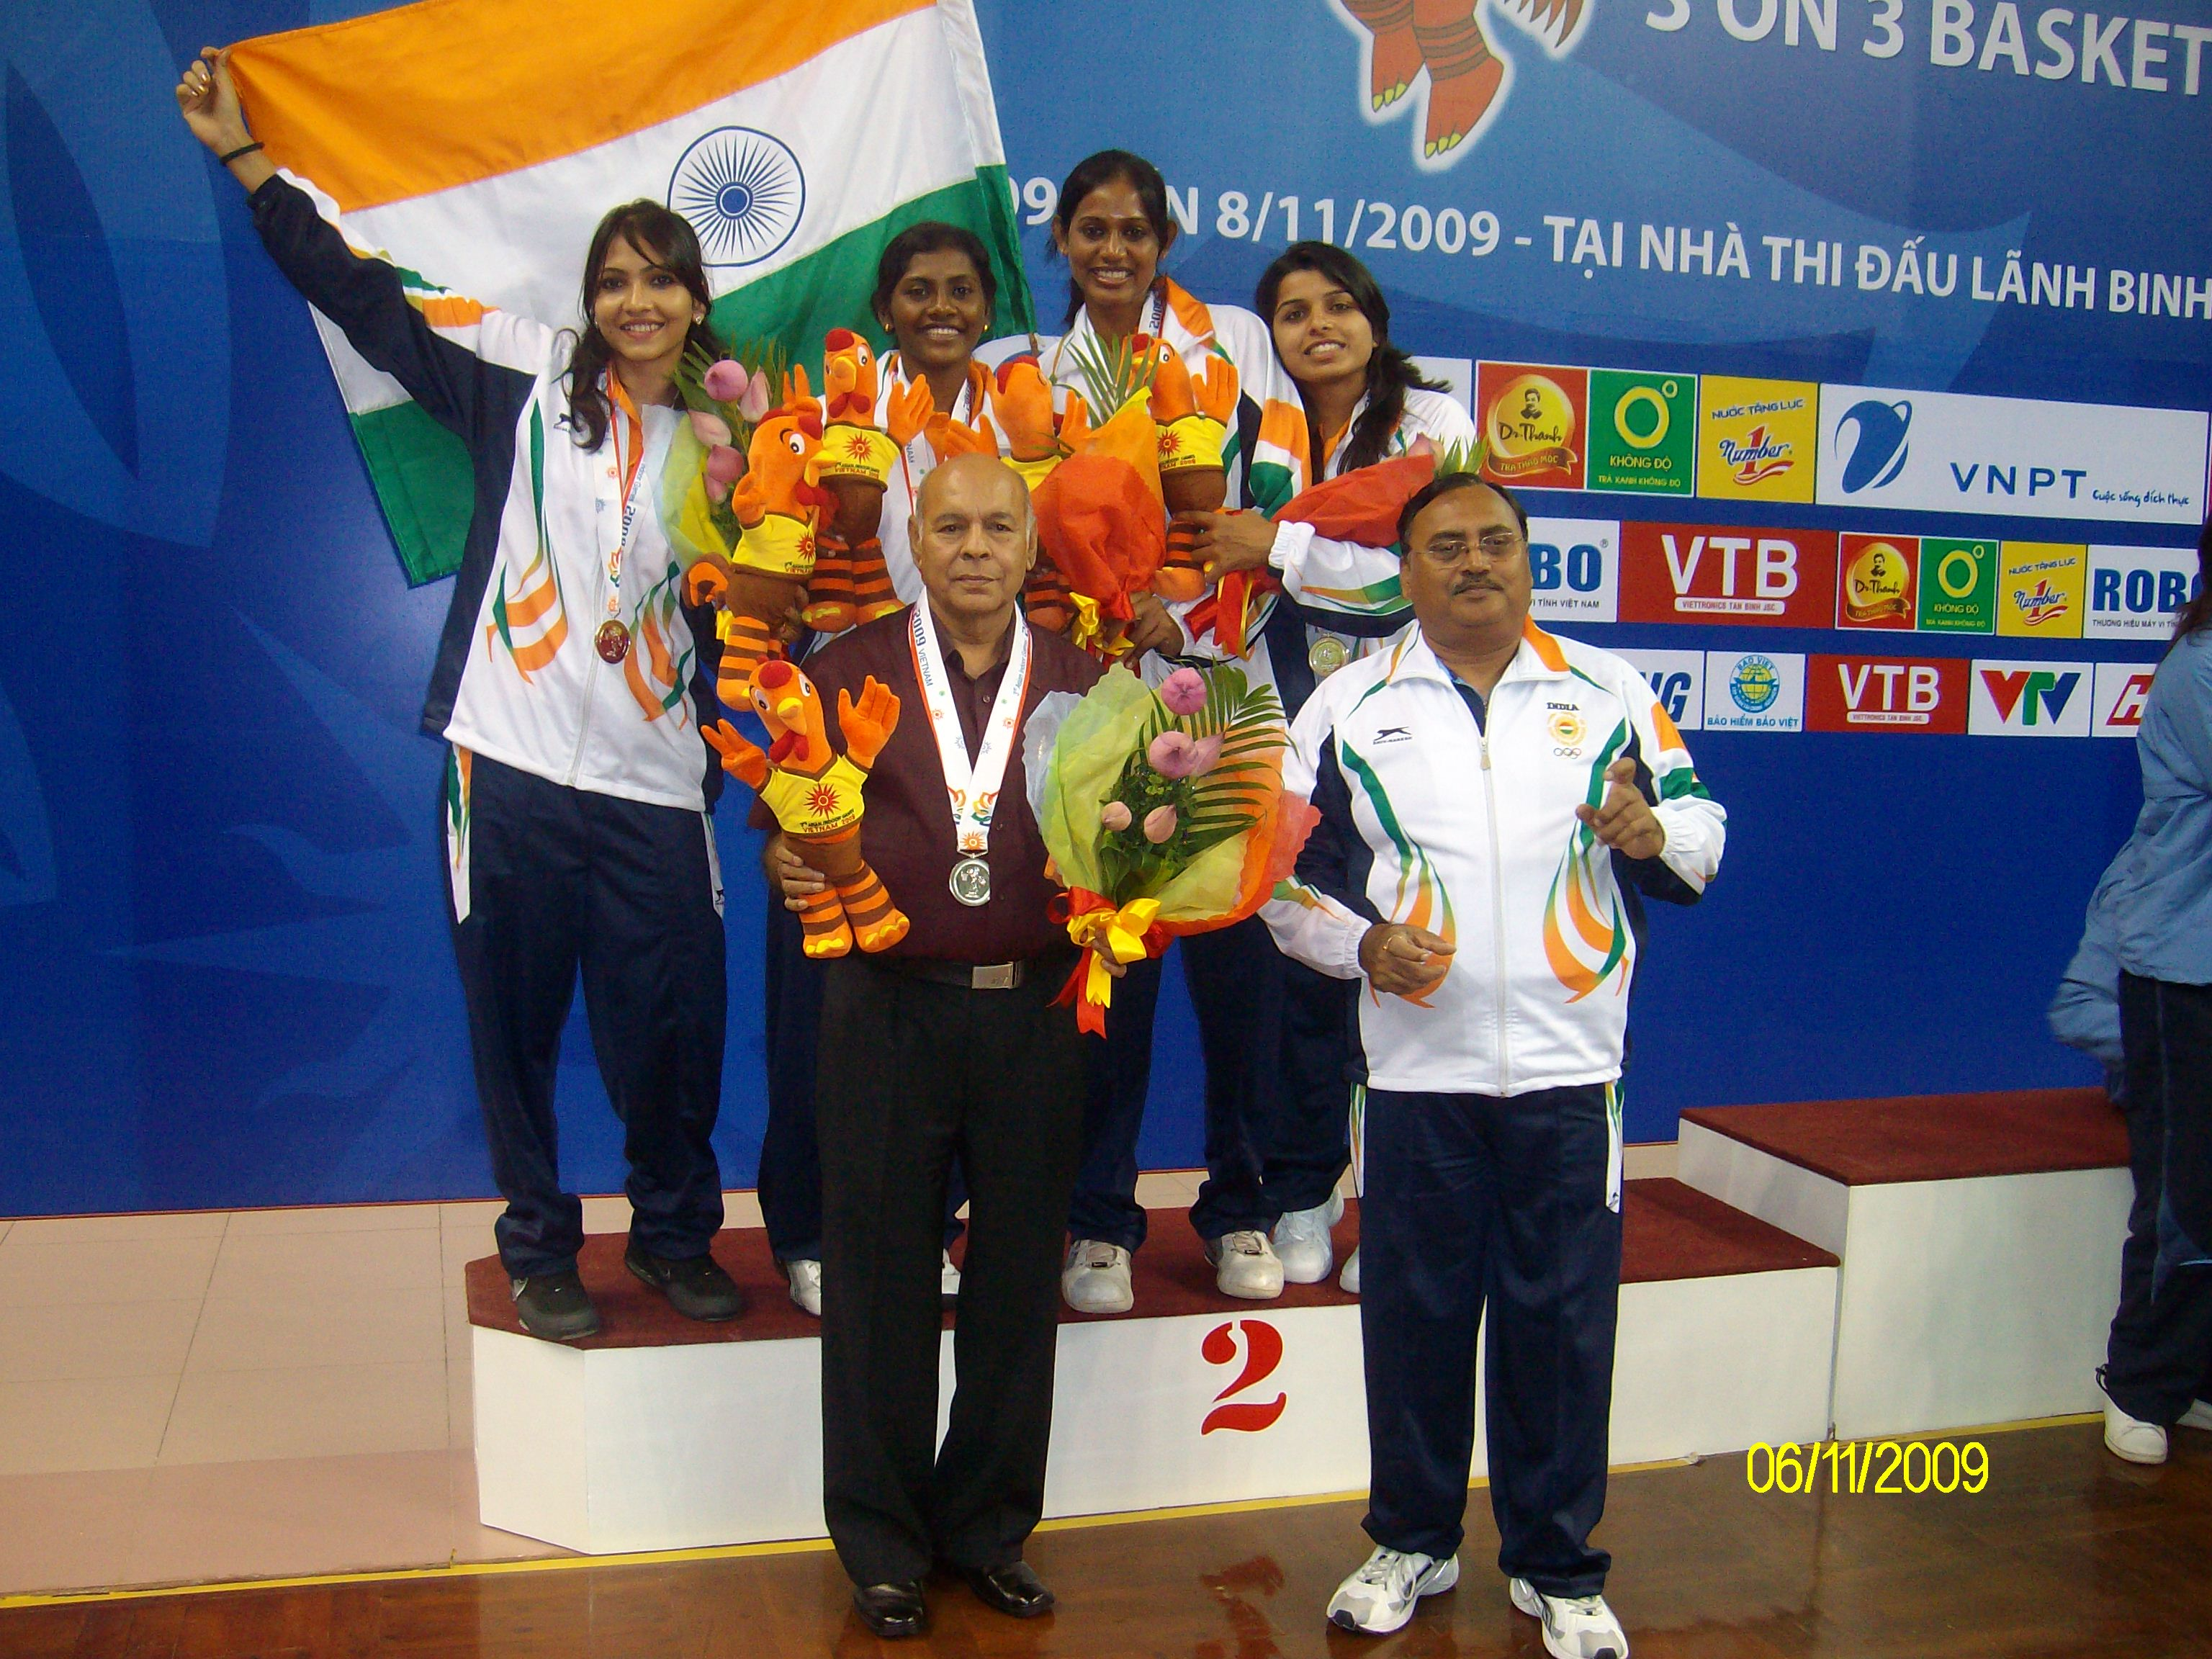 prashanti singh international sporting achievements edit